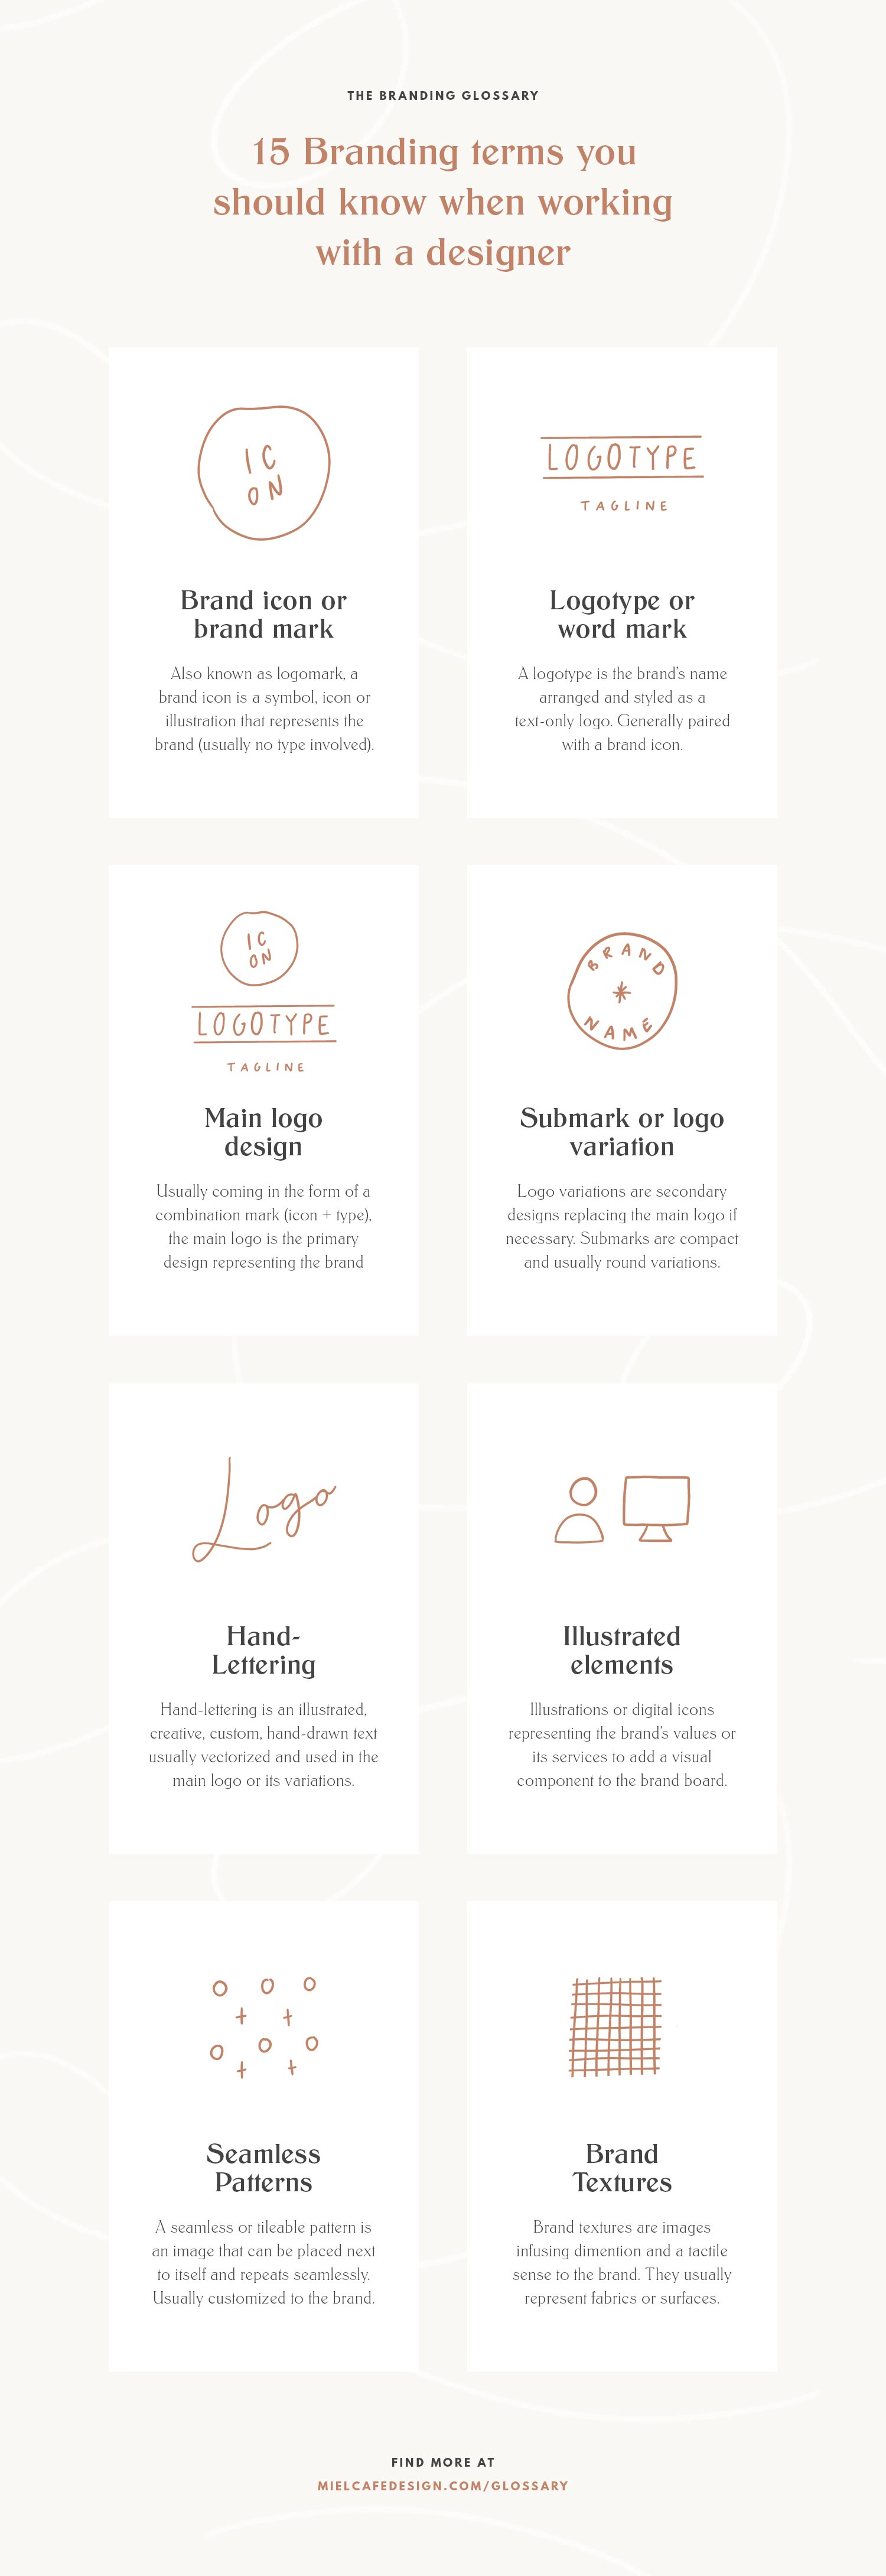 The Branding Glossary infographic: 15 essential branding terms you should know when working with a designer